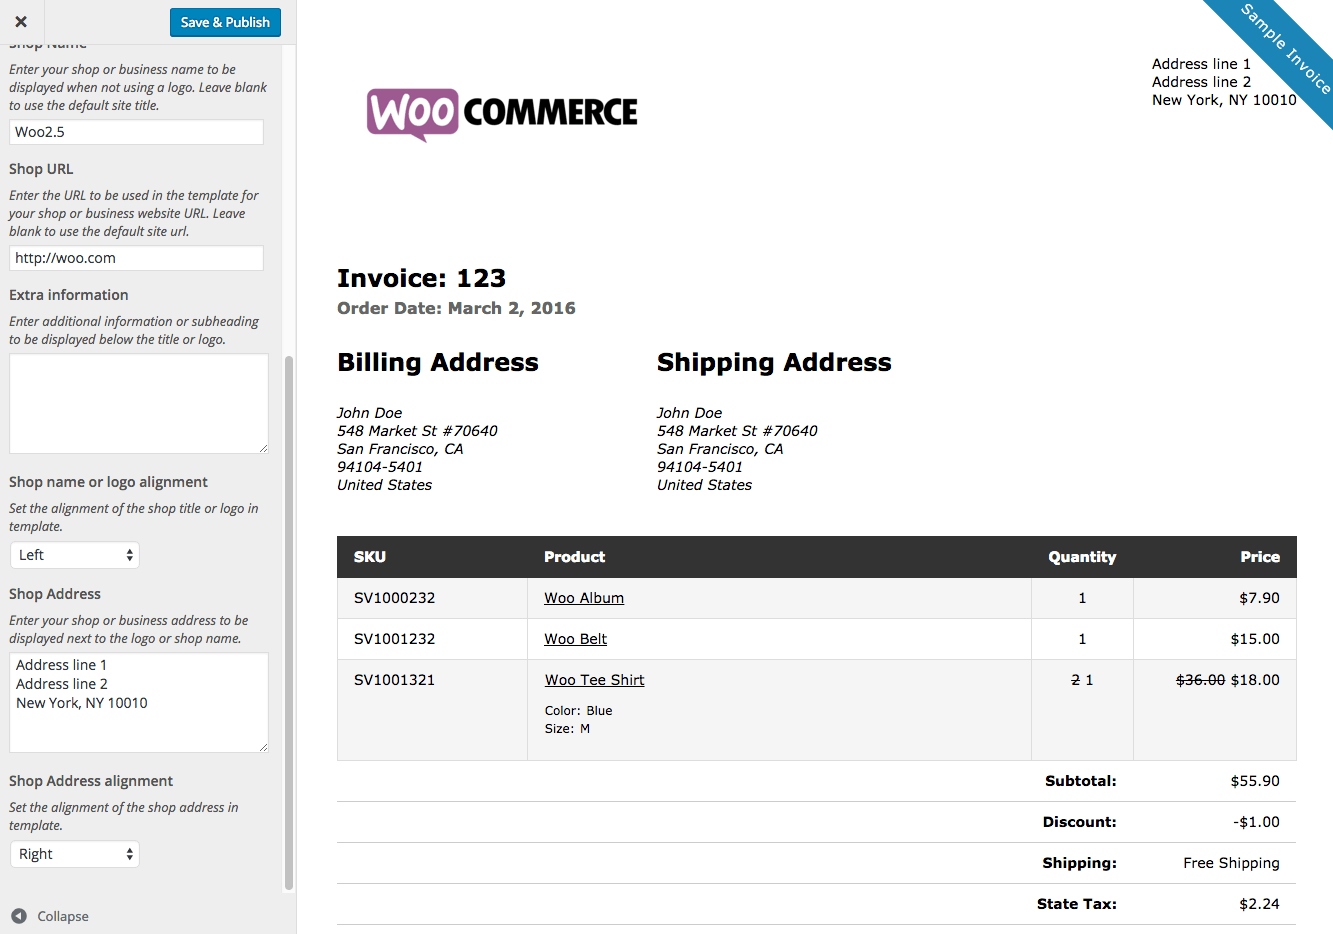 Weirdmailus  Prepossessing Woocommerce Print Invoices Amp Packing Lists  Woocommerce Docs With Interesting Woocommerce Print Invoices  Packing Lists Customizer With Delectable Palm Beach County Tax Receipt Also Kindly Acknowledge Receipt Of This Email In Addition Making Receipts And Polk County Business Tax Receipt As Well As Payment Terms Due On Receipt Additionally Usps Insured Mail Receipt Tracking From Docswoocommercecom With Weirdmailus  Interesting Woocommerce Print Invoices Amp Packing Lists  Woocommerce Docs With Delectable Woocommerce Print Invoices  Packing Lists Customizer And Prepossessing Palm Beach County Tax Receipt Also Kindly Acknowledge Receipt Of This Email In Addition Making Receipts From Docswoocommercecom